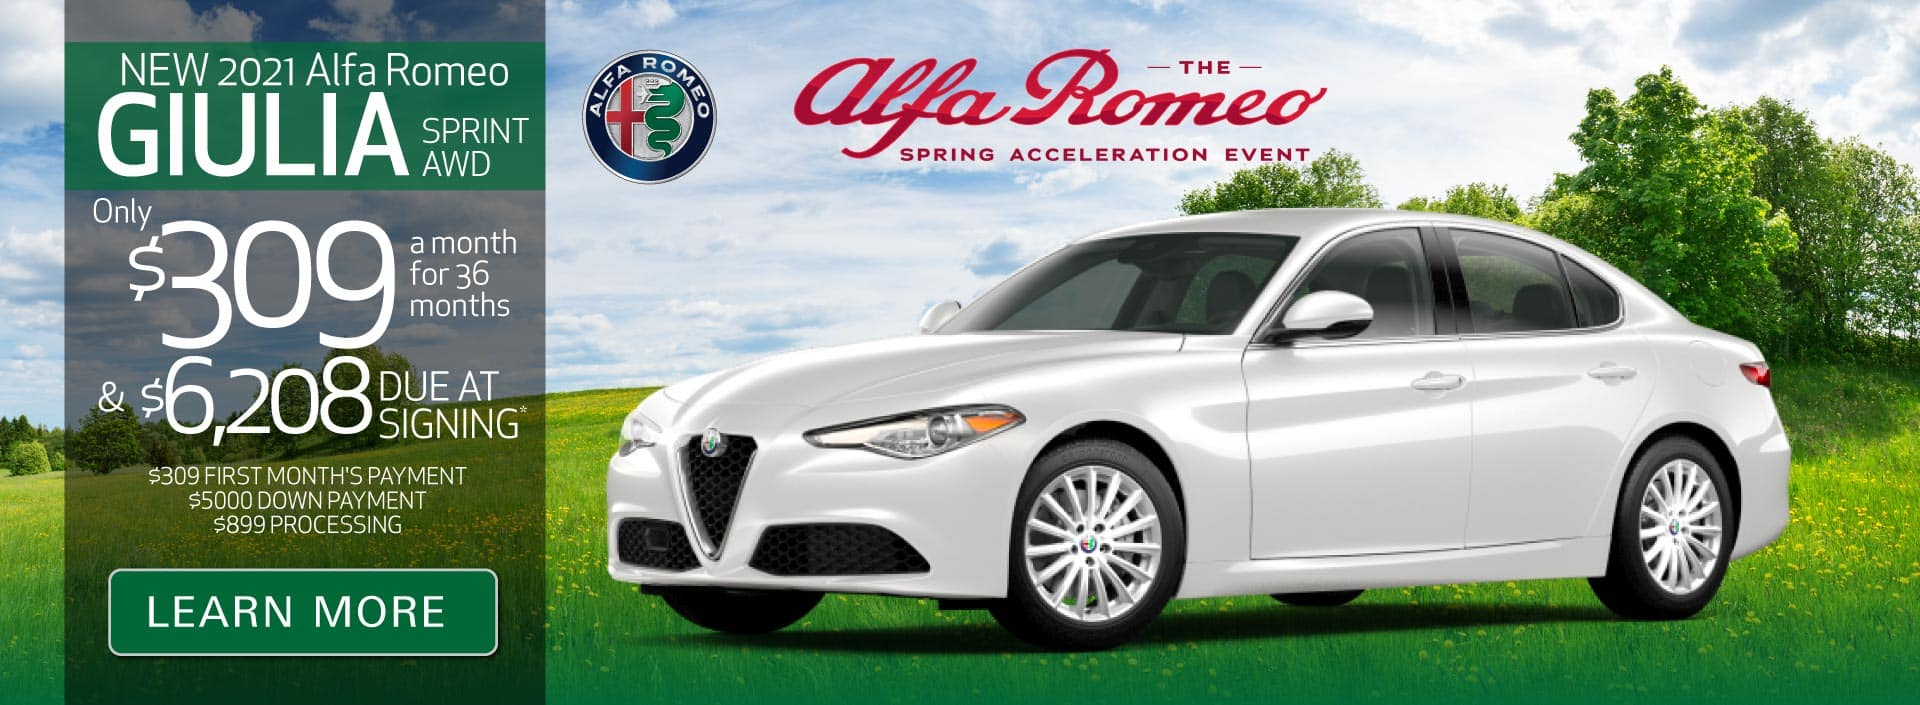 New 2021 Giulia Sprint AWD only $309 a month | Learn More